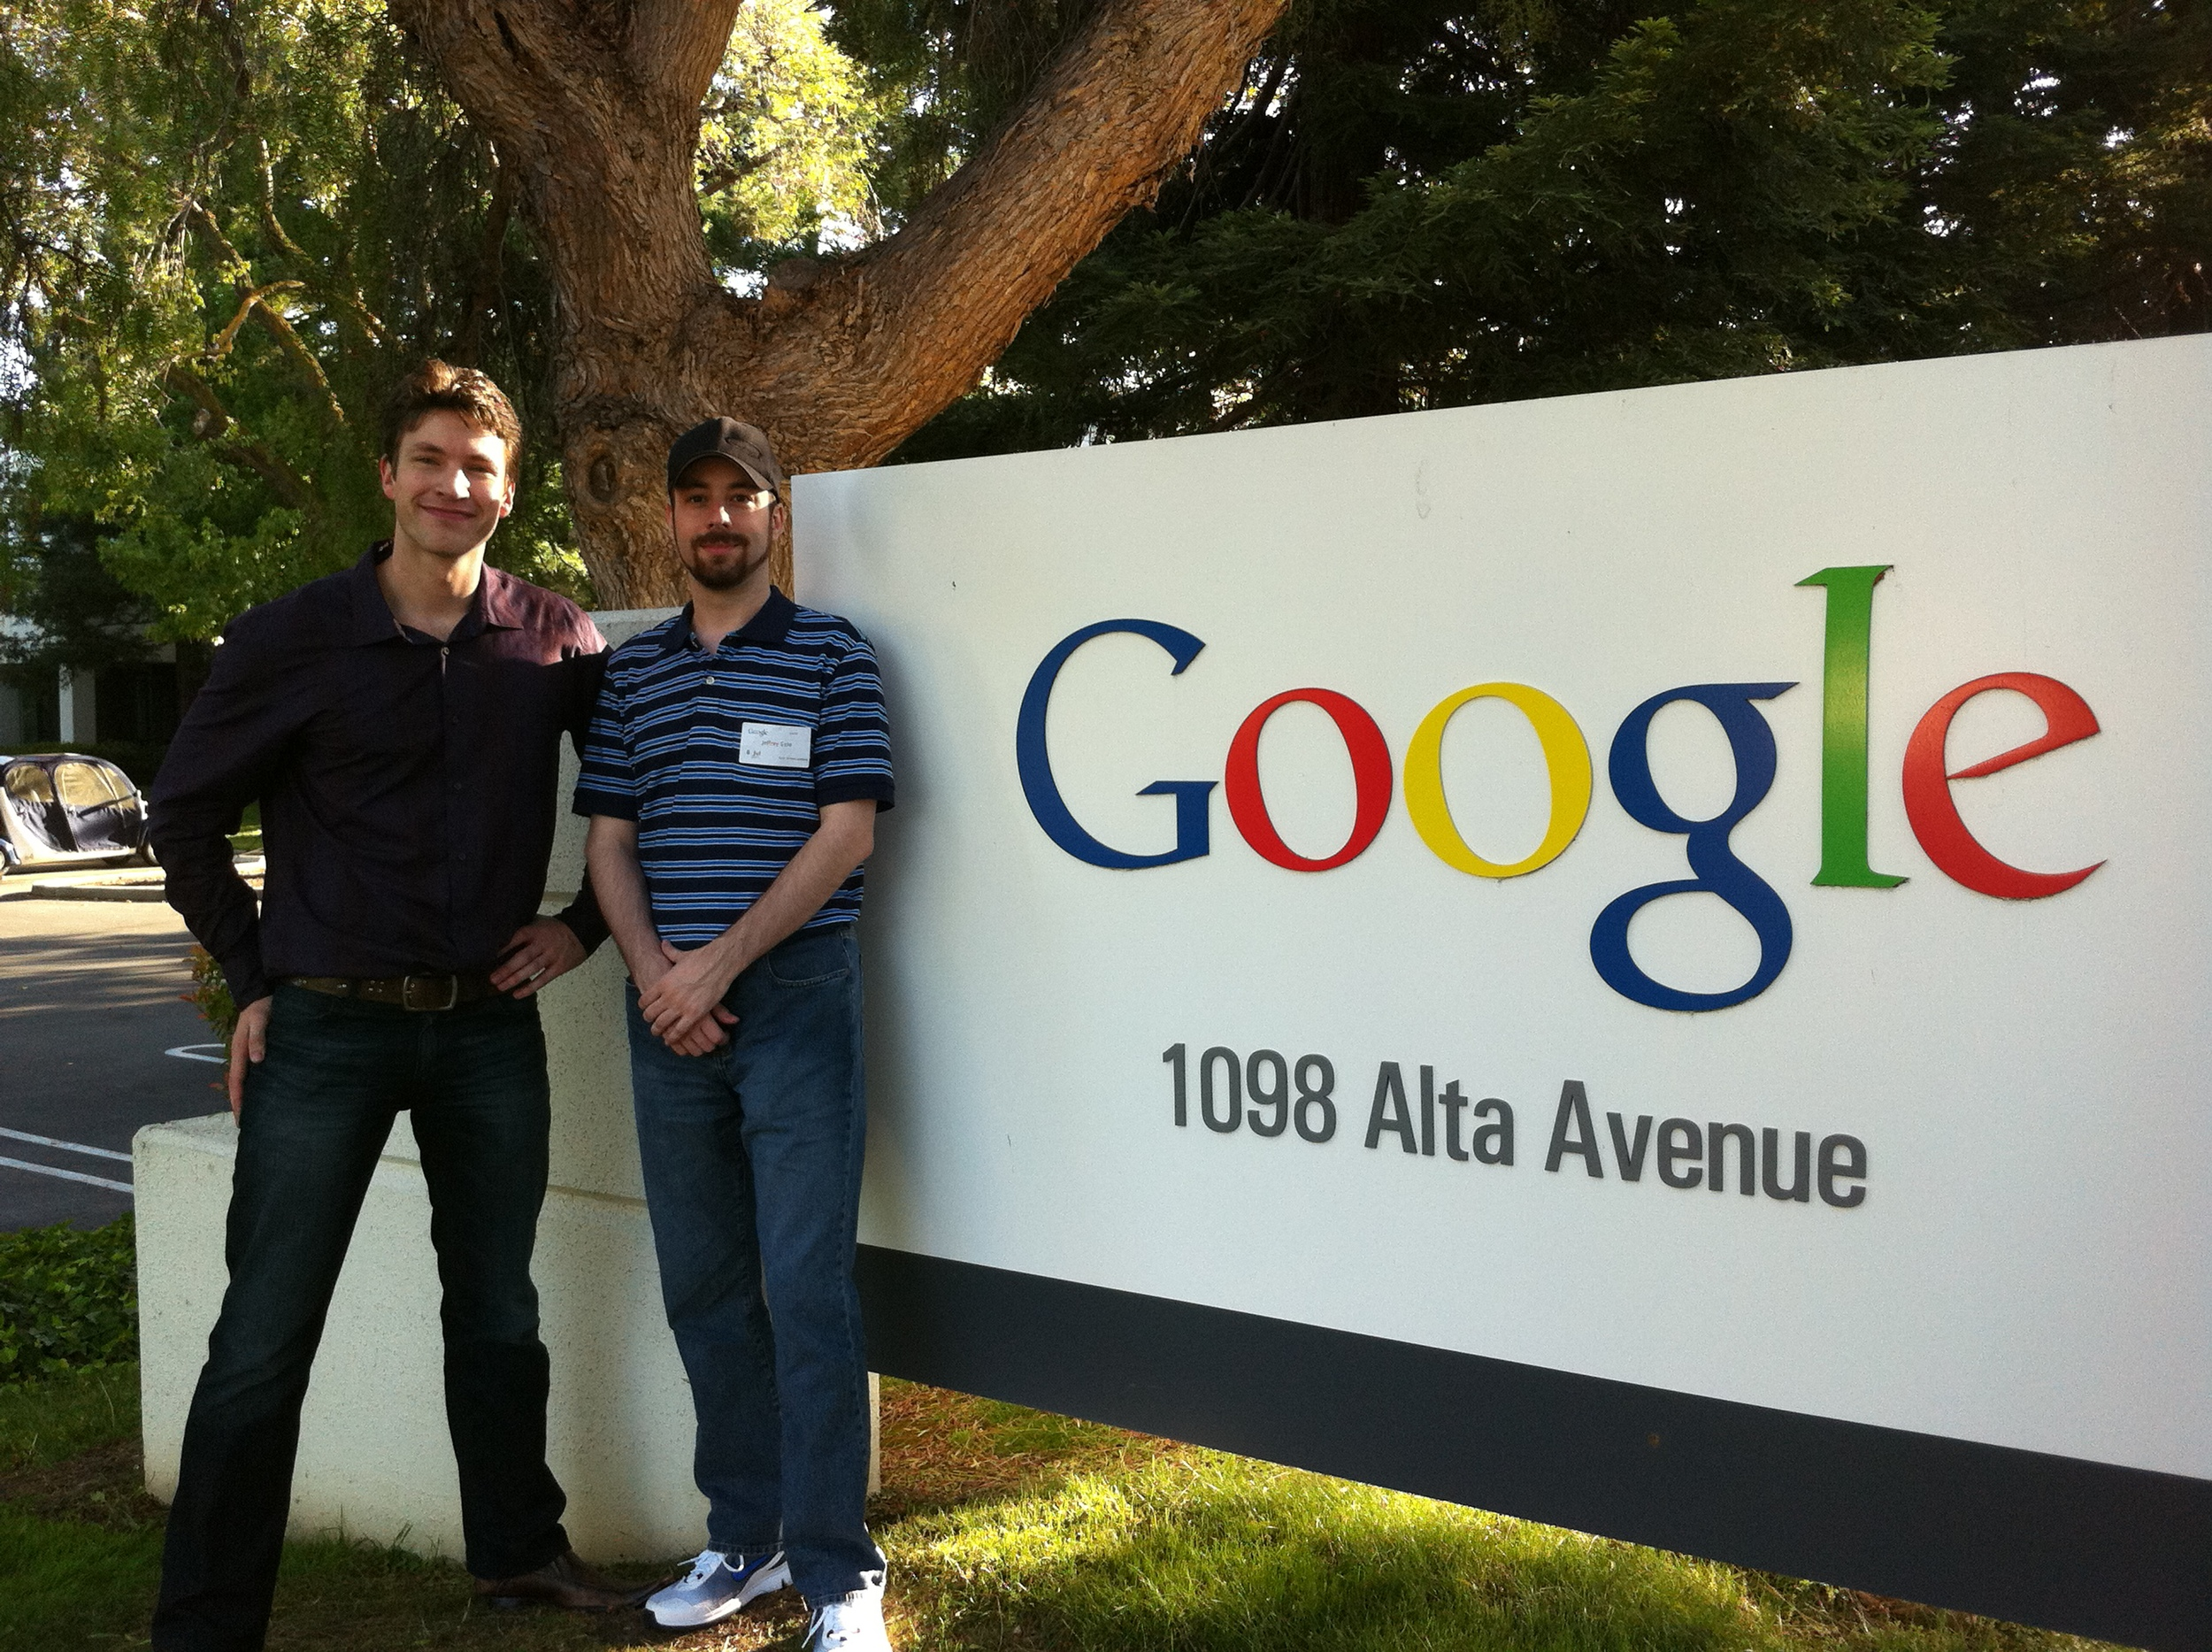 Myself and Jeff on a tour of Google while we were in the neighbourhood. They had no involvement in the acquisition though.